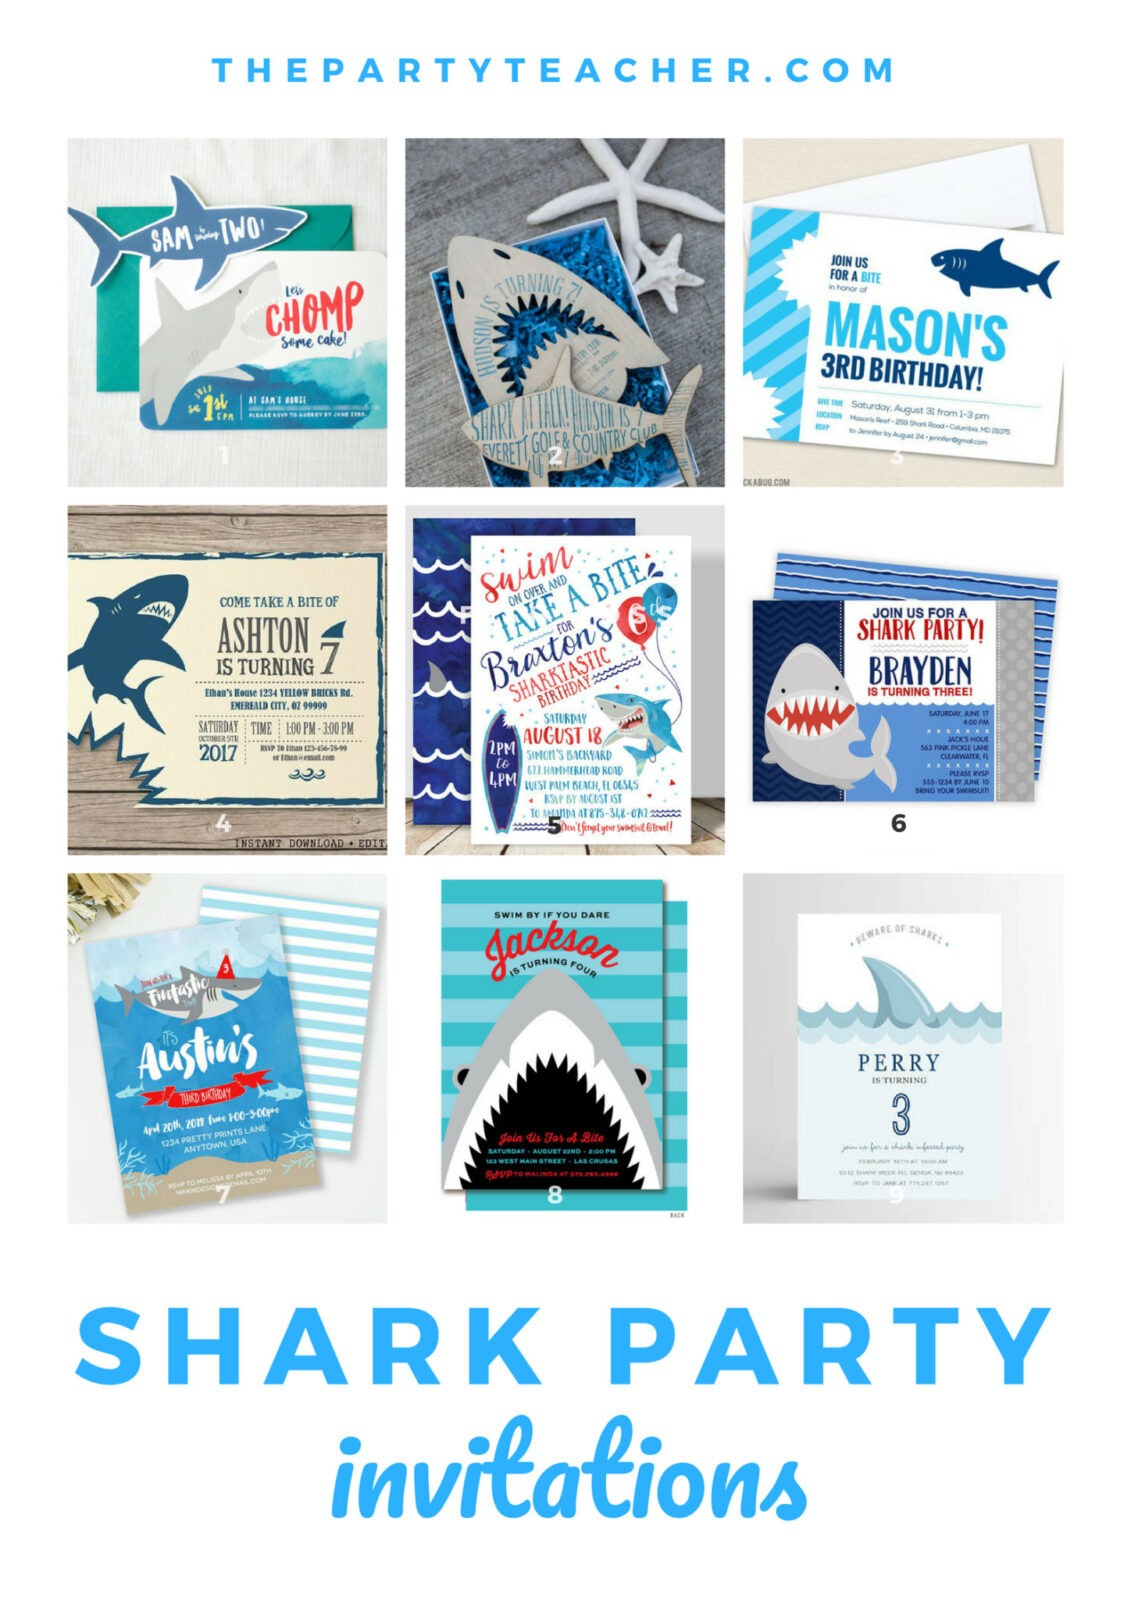 Shark Birthday Party Invitation Ideas From The Party